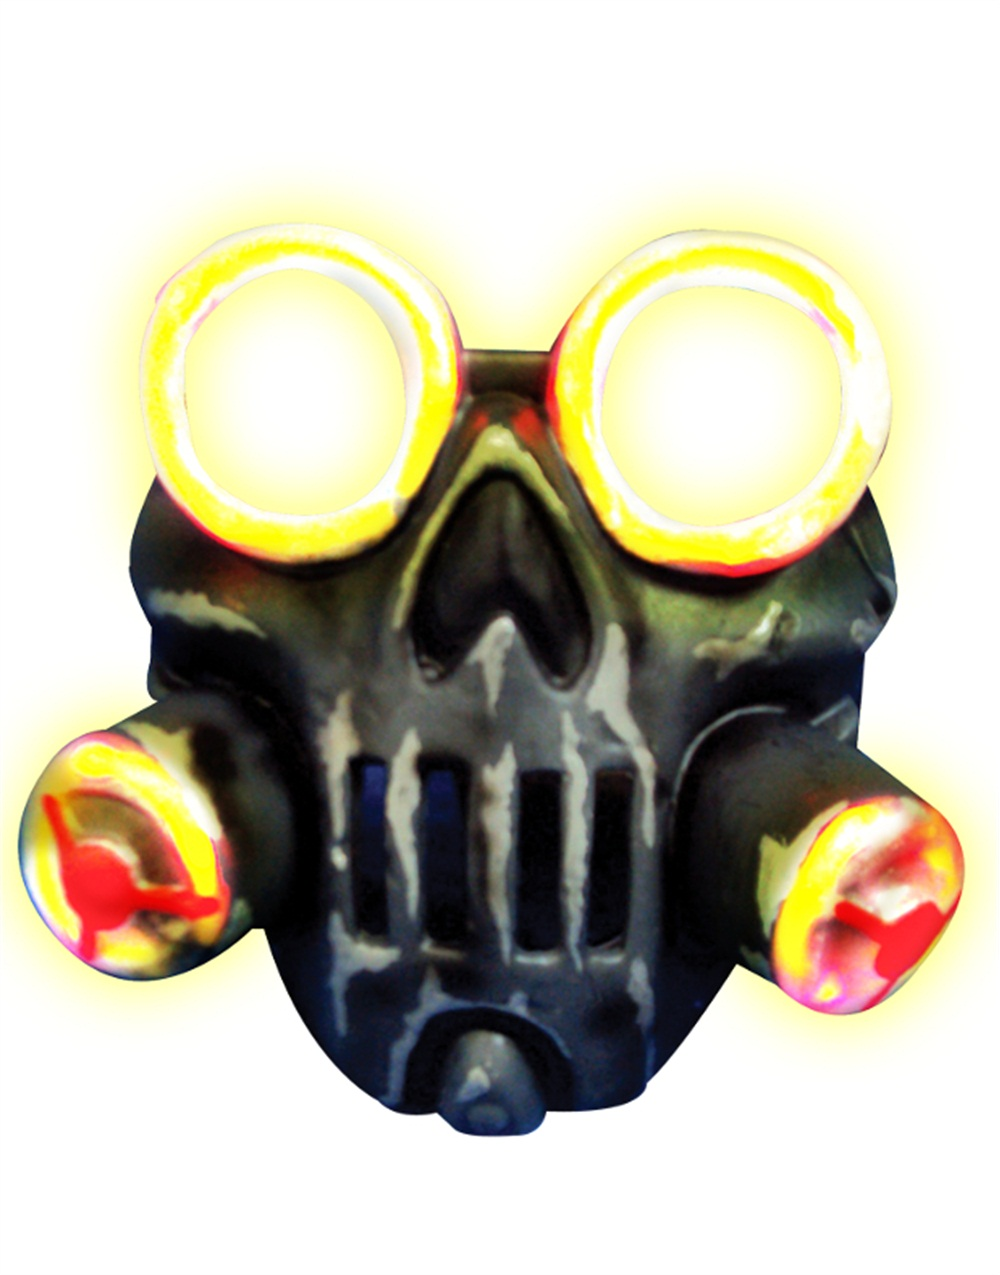 Adult's Toxic Light Up Biohazard Gas Mask Costume Accessory by Rubies Costume Co